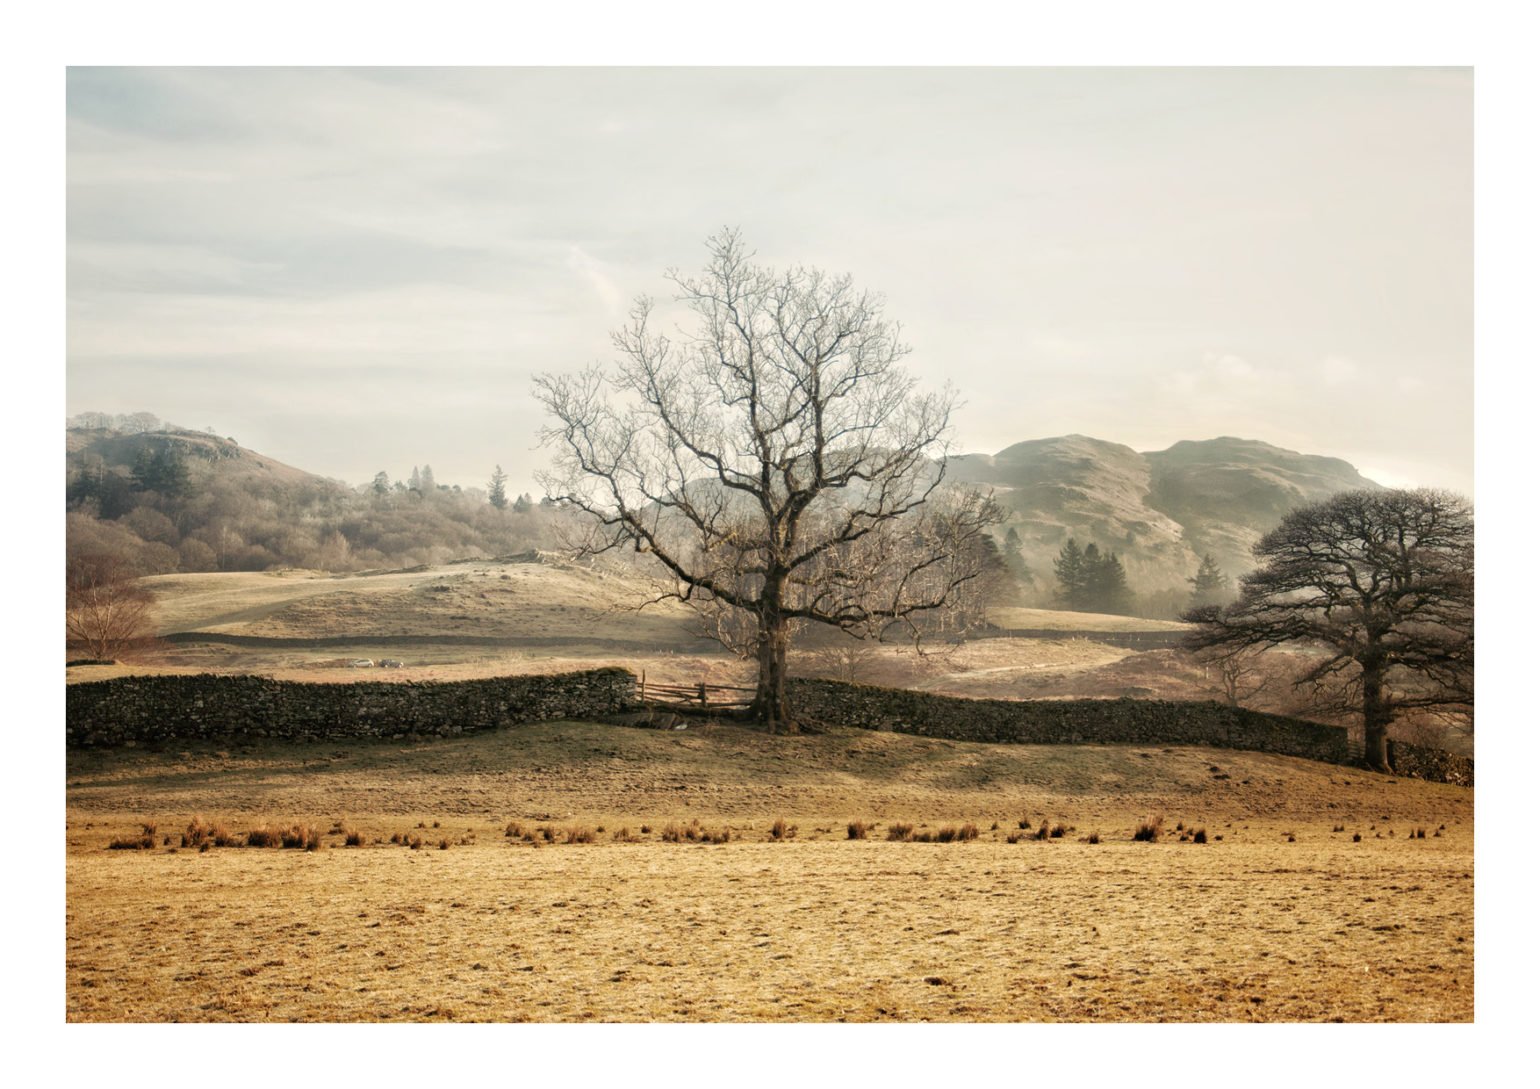 A4L_elterwater4